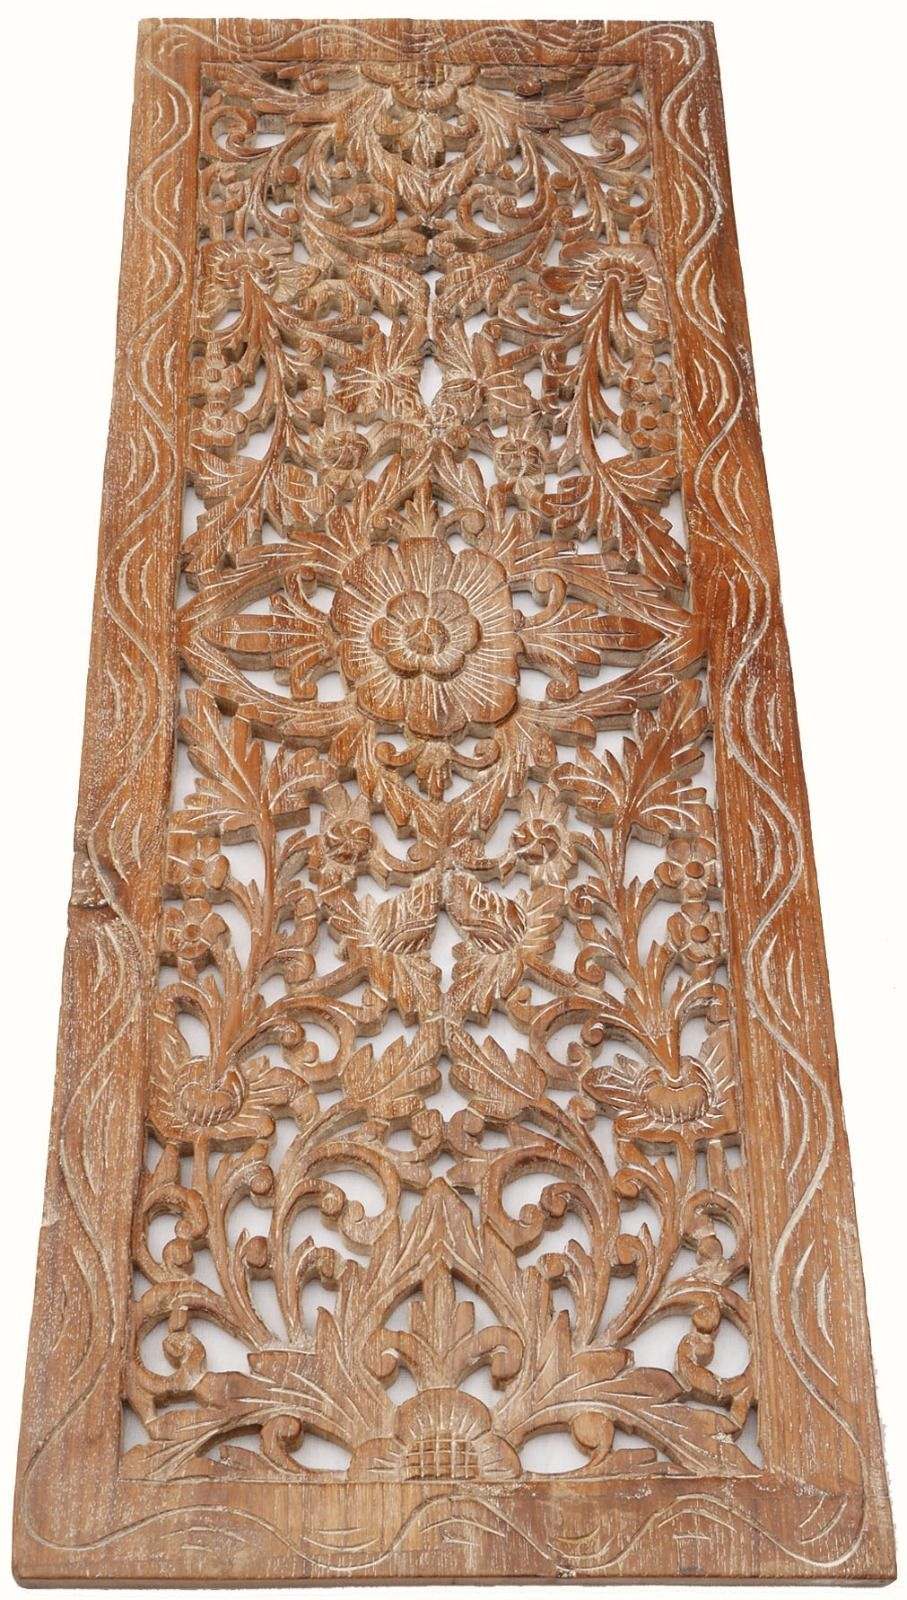 Asian Carved Wood Wall Decor Panel Floral Wood Wall Art White Wash 35 5 034 X13 5 034 Ebay Carved Wood Wall Art Carved Wood Wall Decor Carved Wall Art